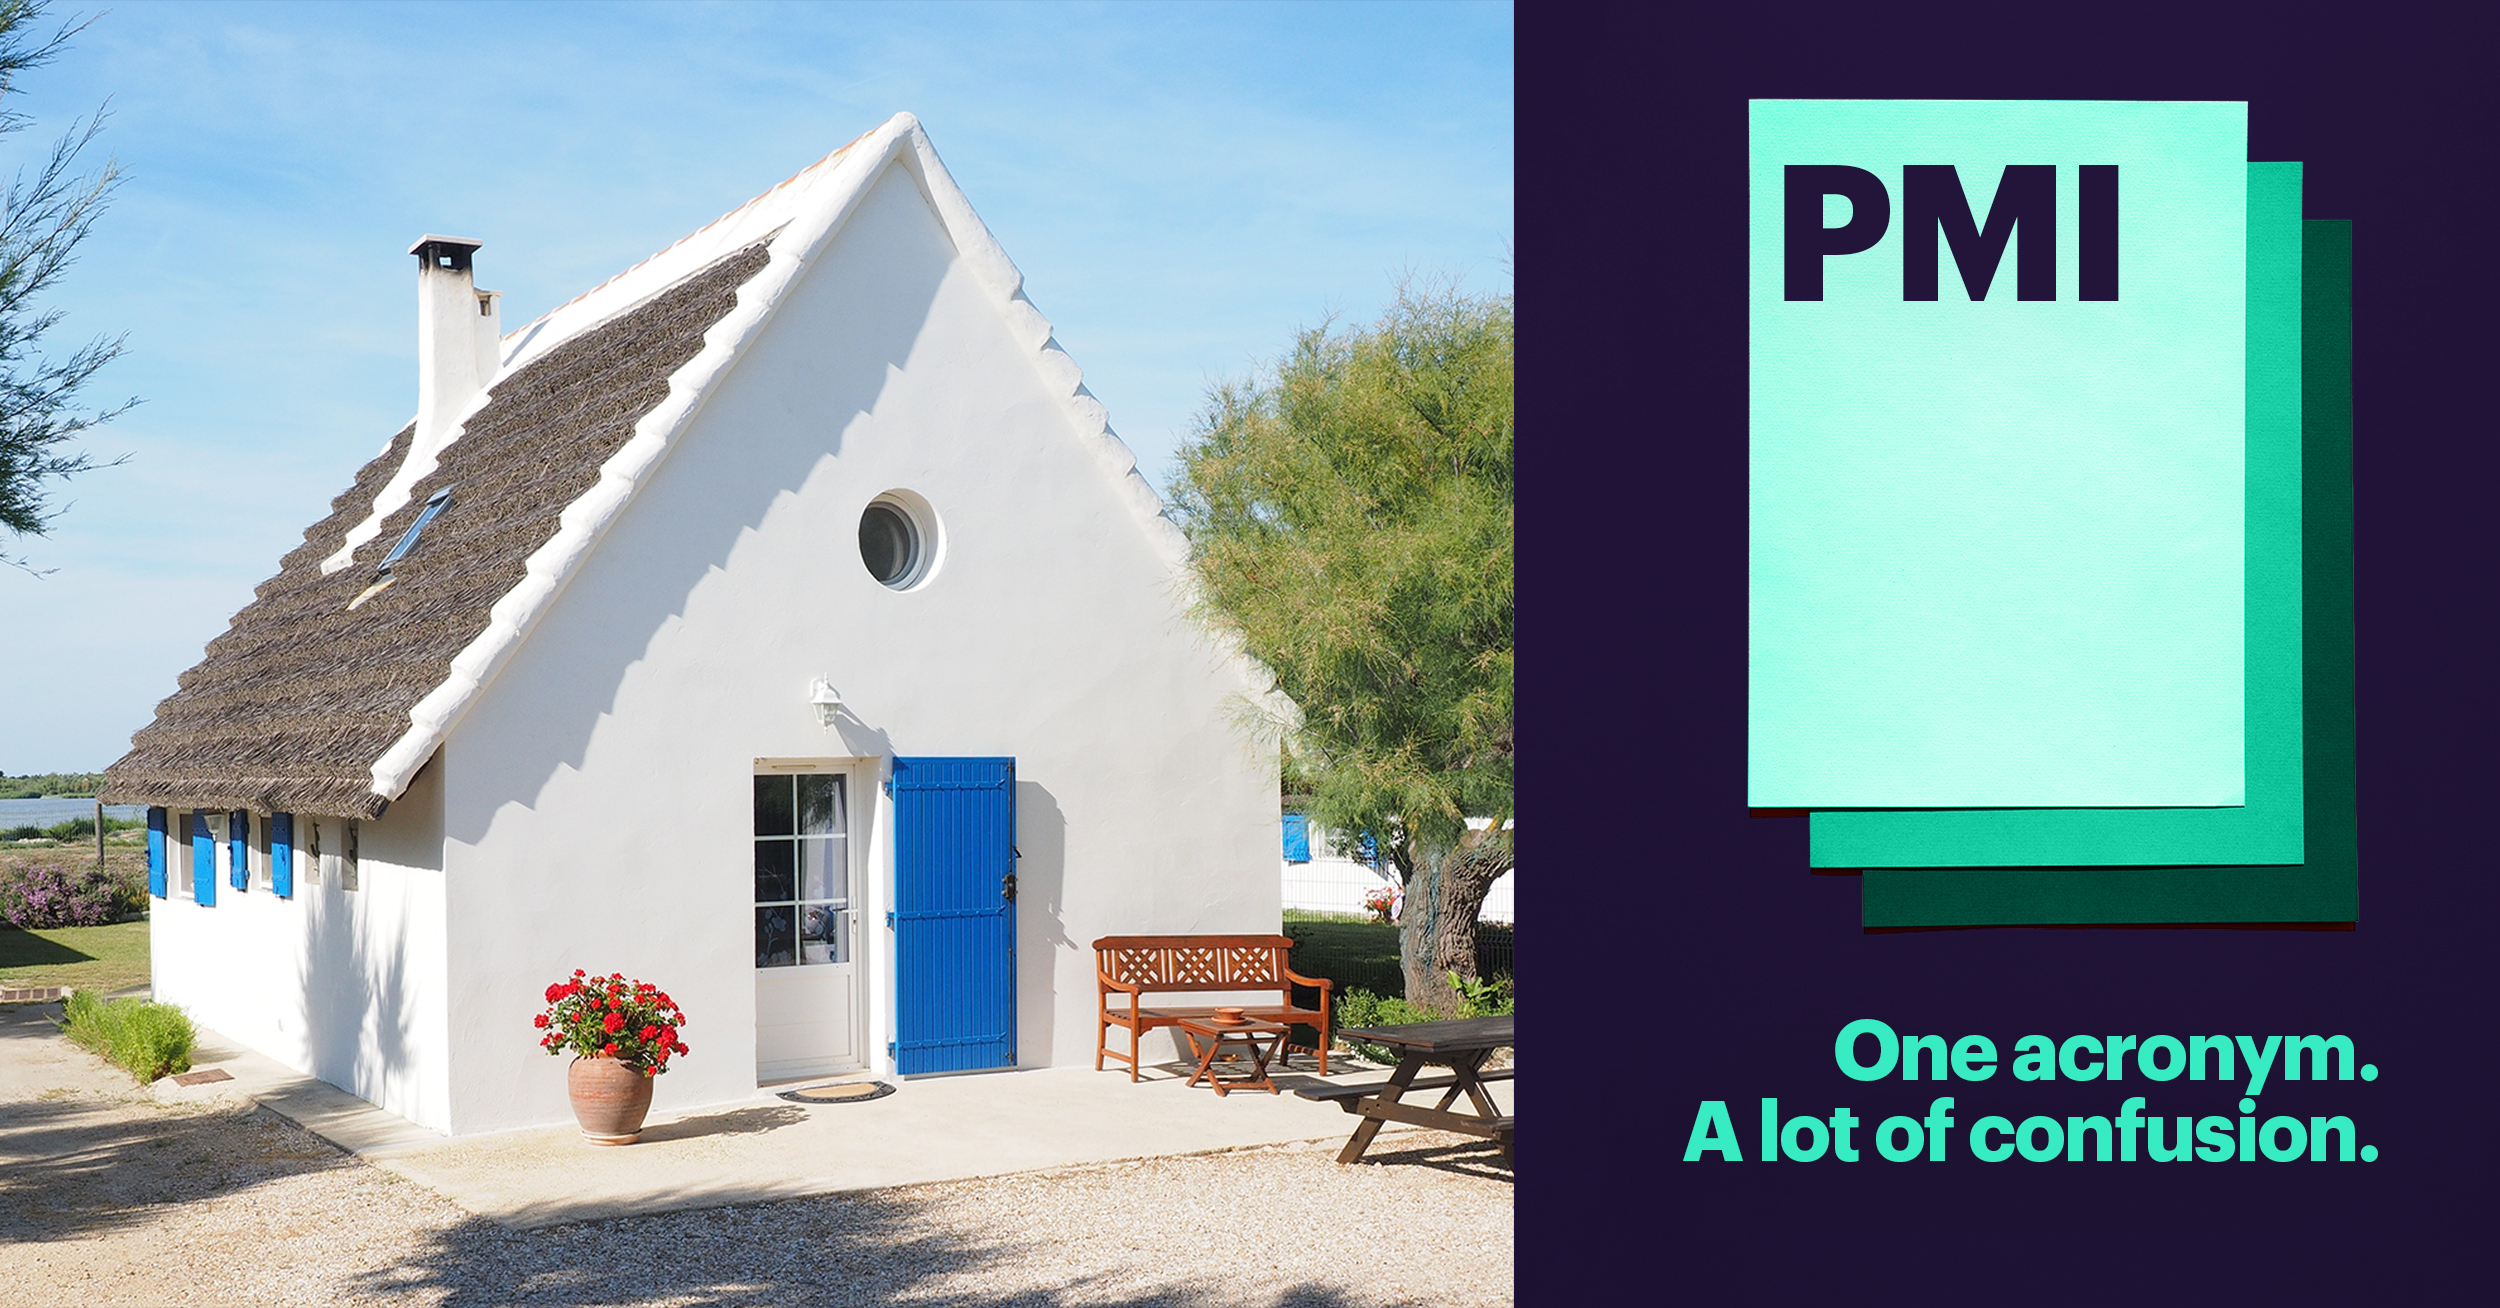 Two Images Side by Side. First is of Small White Triangular Home with a Blue Front Door. Second is PMI: One Acronym. A Lot of Confusion